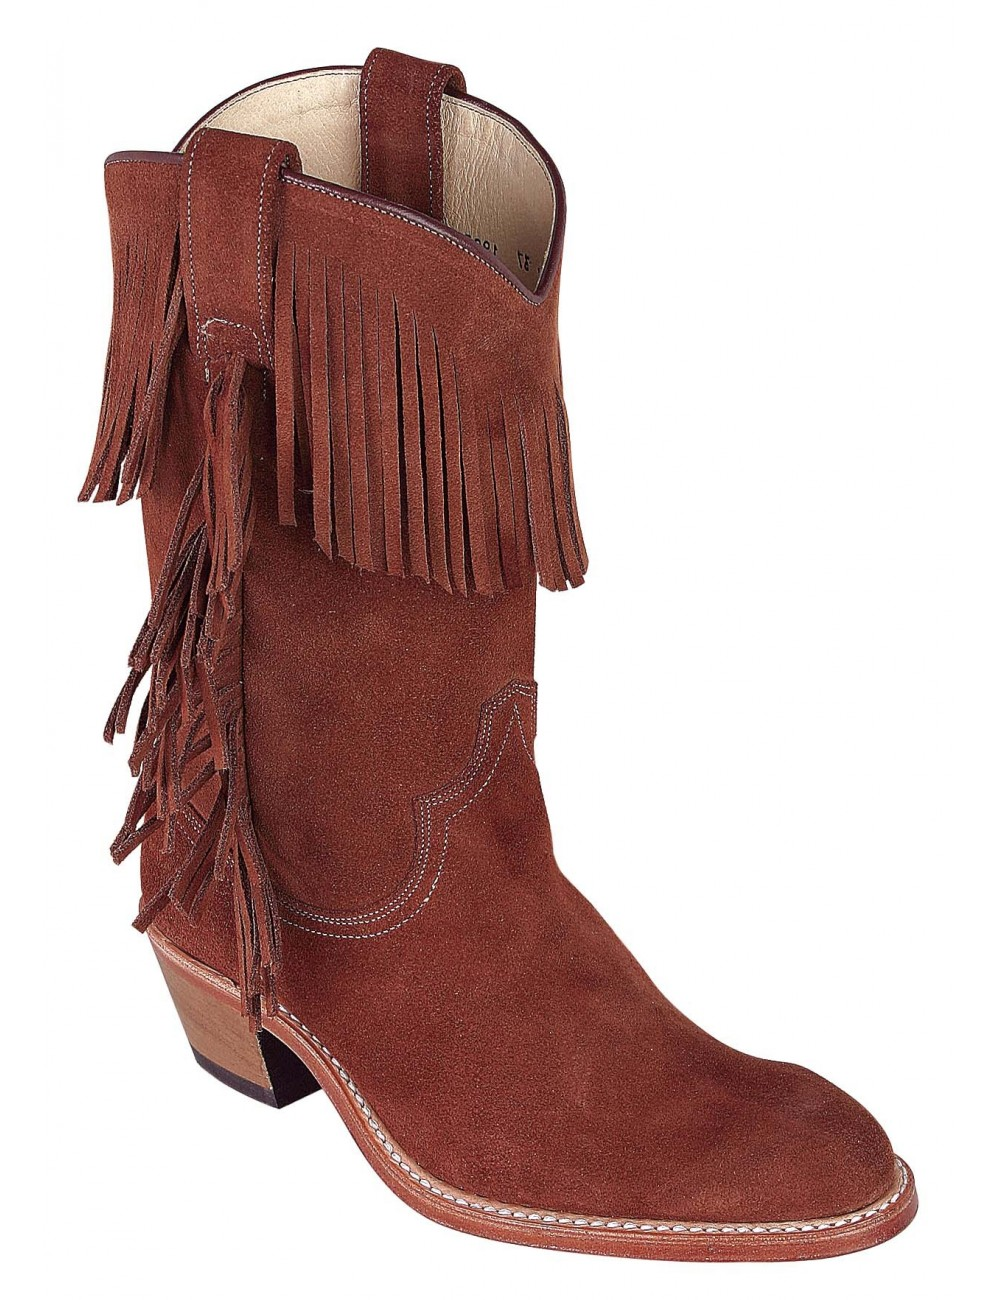 Bottes country cuir marron franges femme - Bottes santiags country